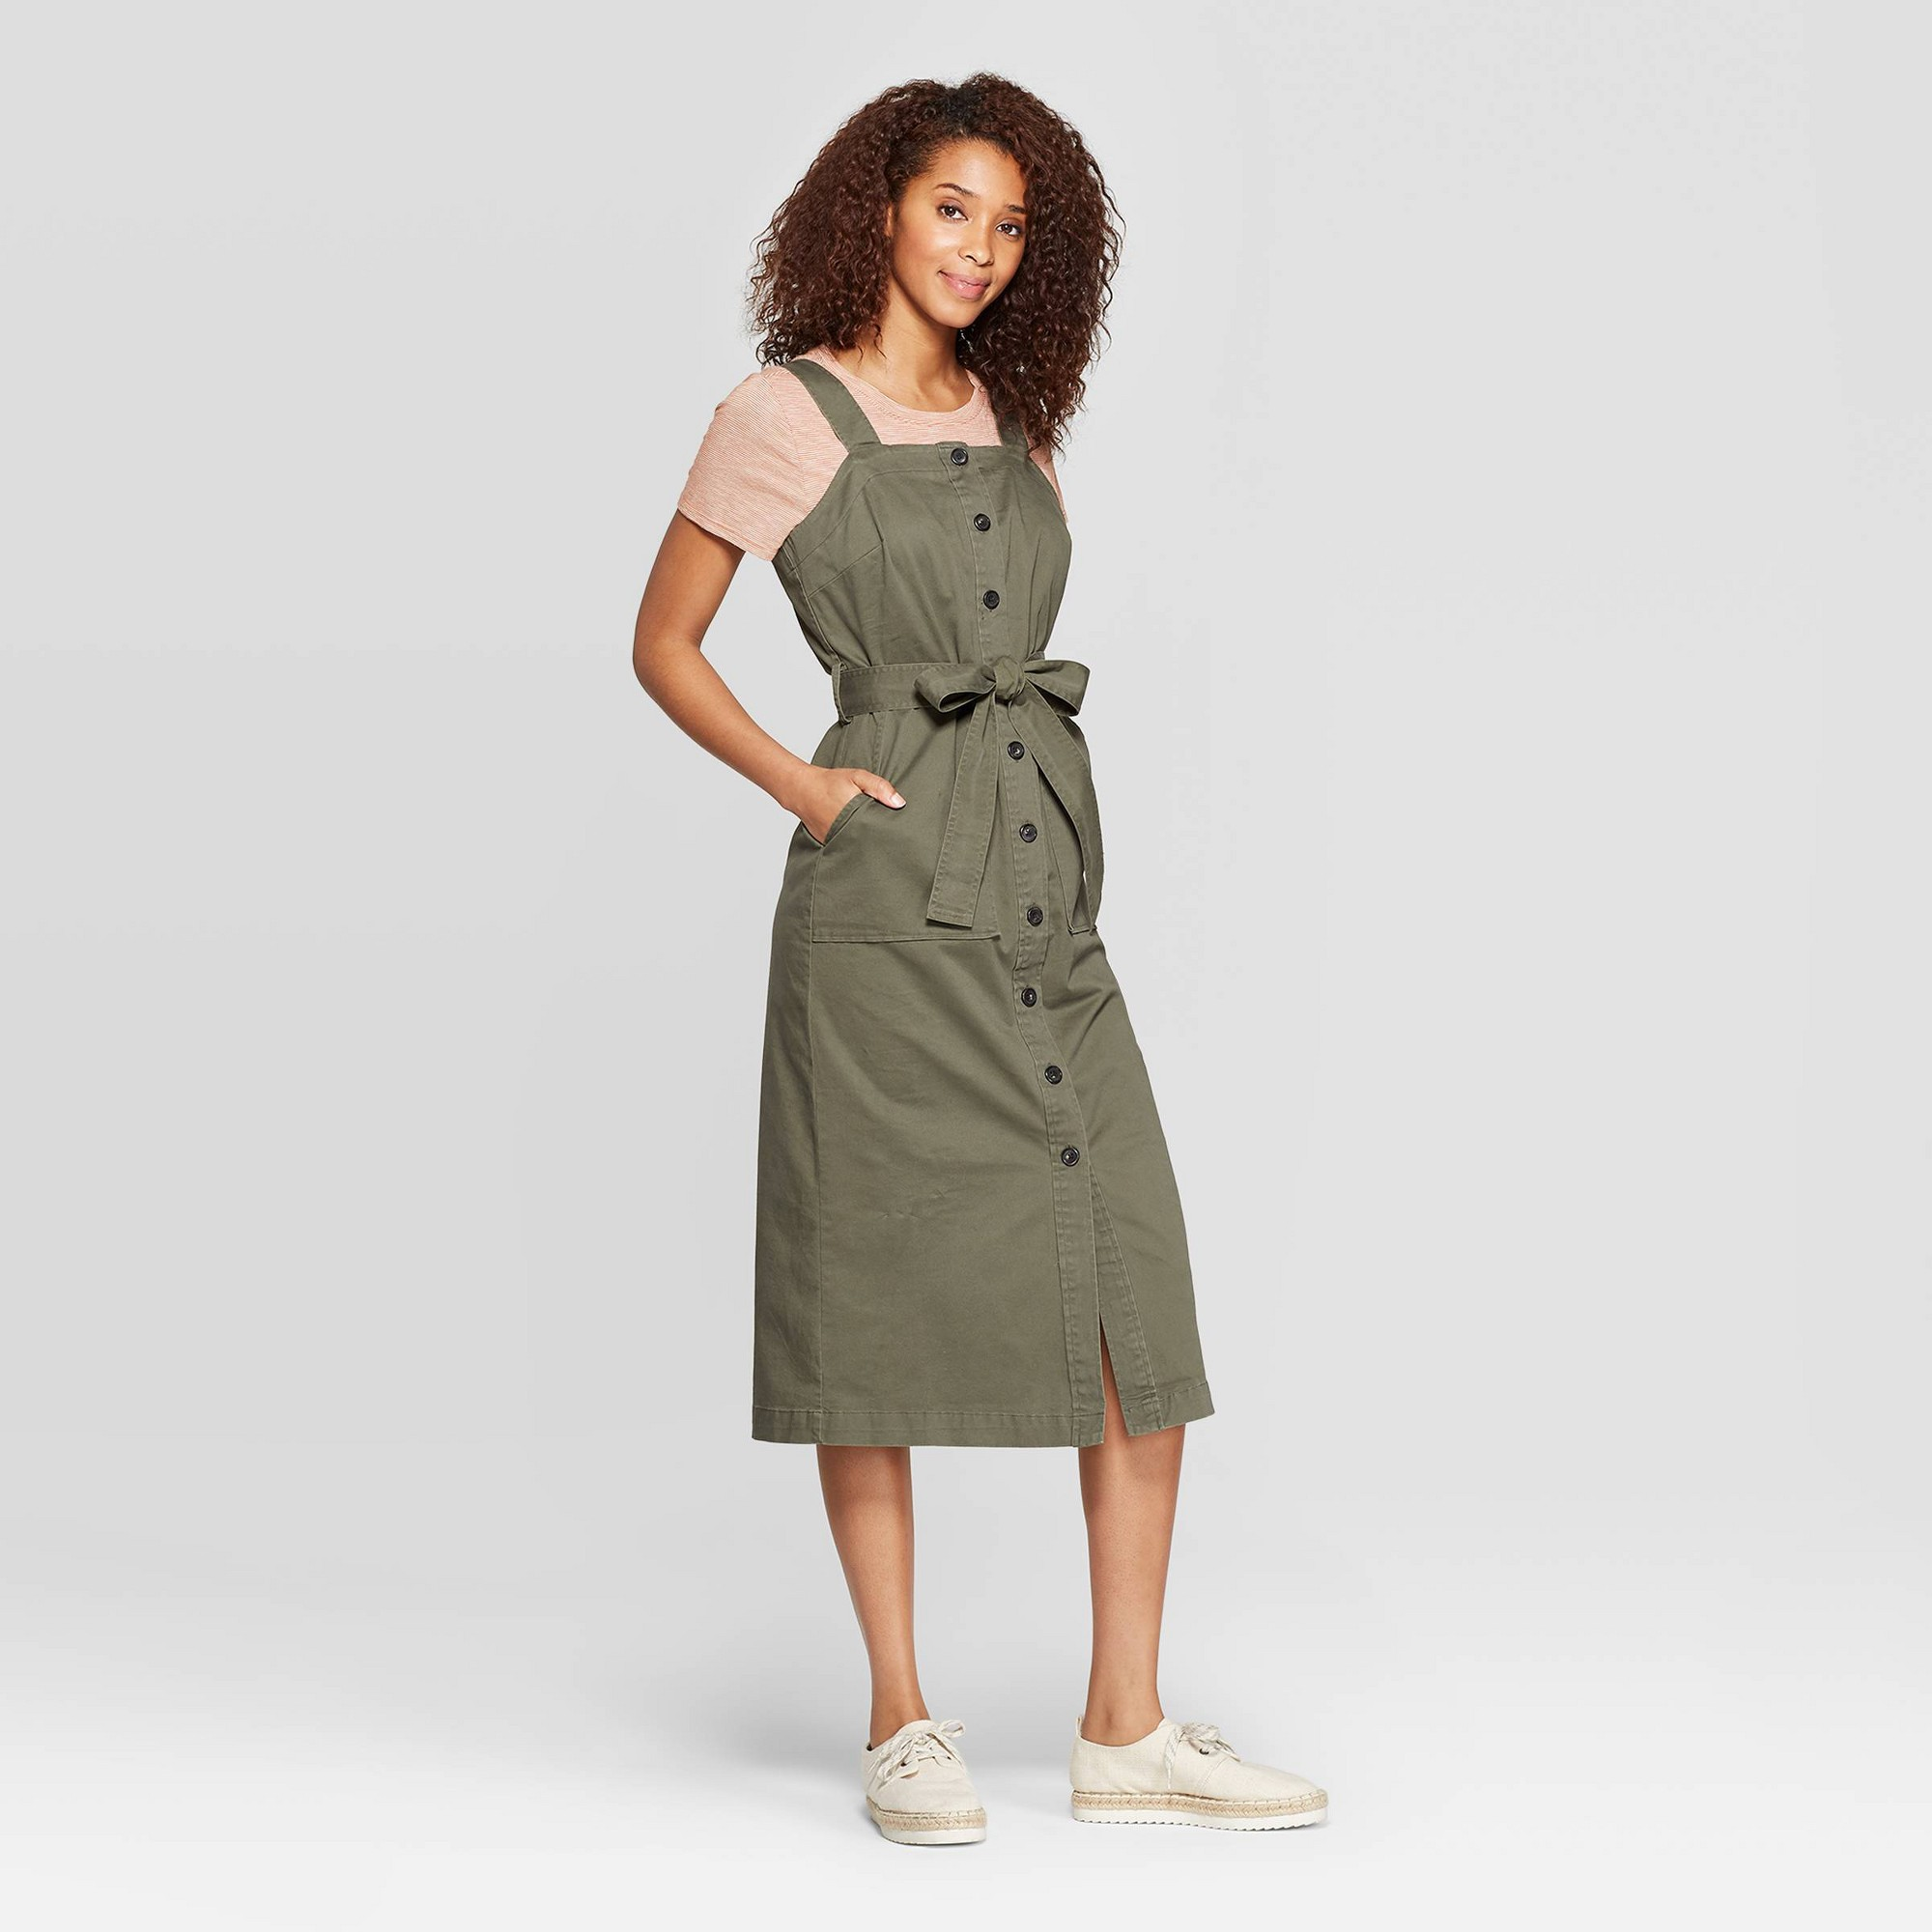 Women's Sleeveless Square Neck Midi Button Front Belted Dress - Universal Thread Olive (Green) M